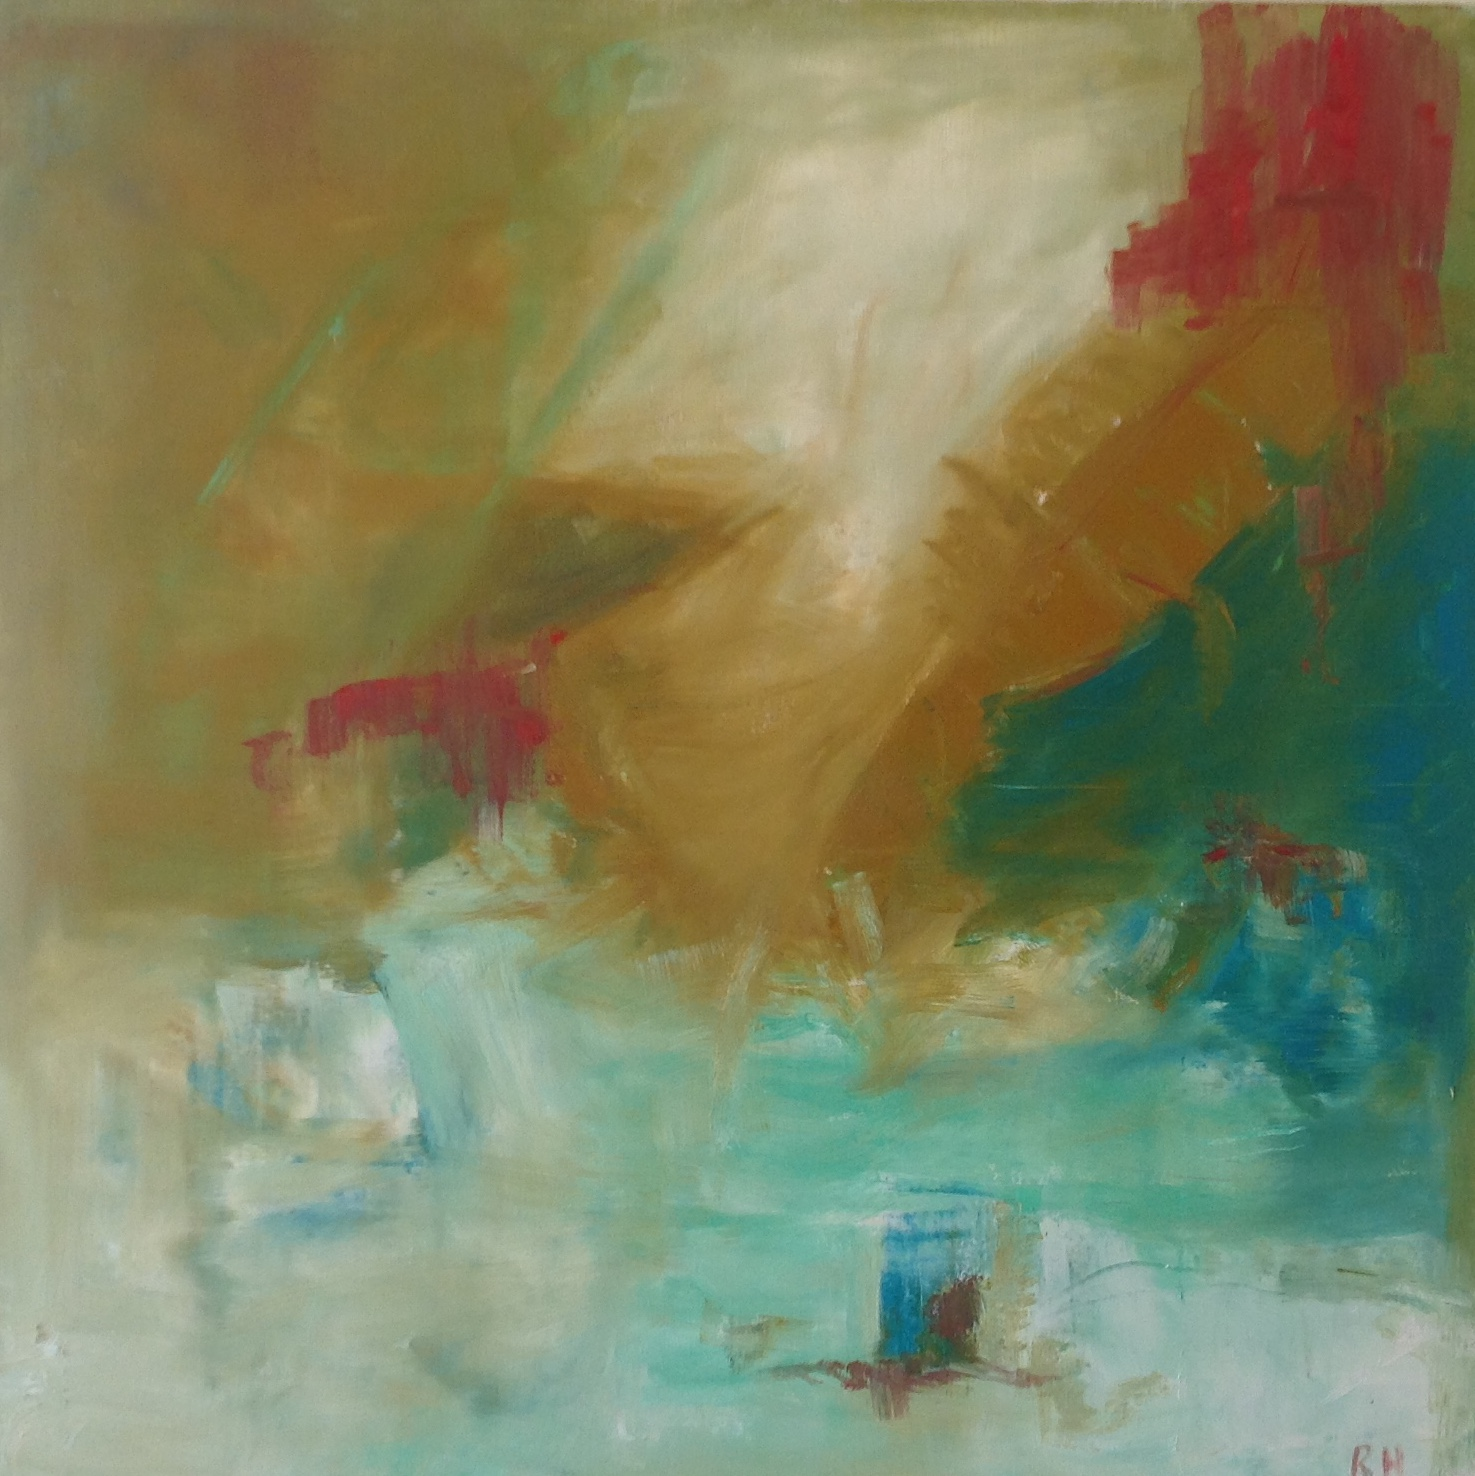 Untitled, oil on canvas, 30 x 30 inches, 76 x 76 cm